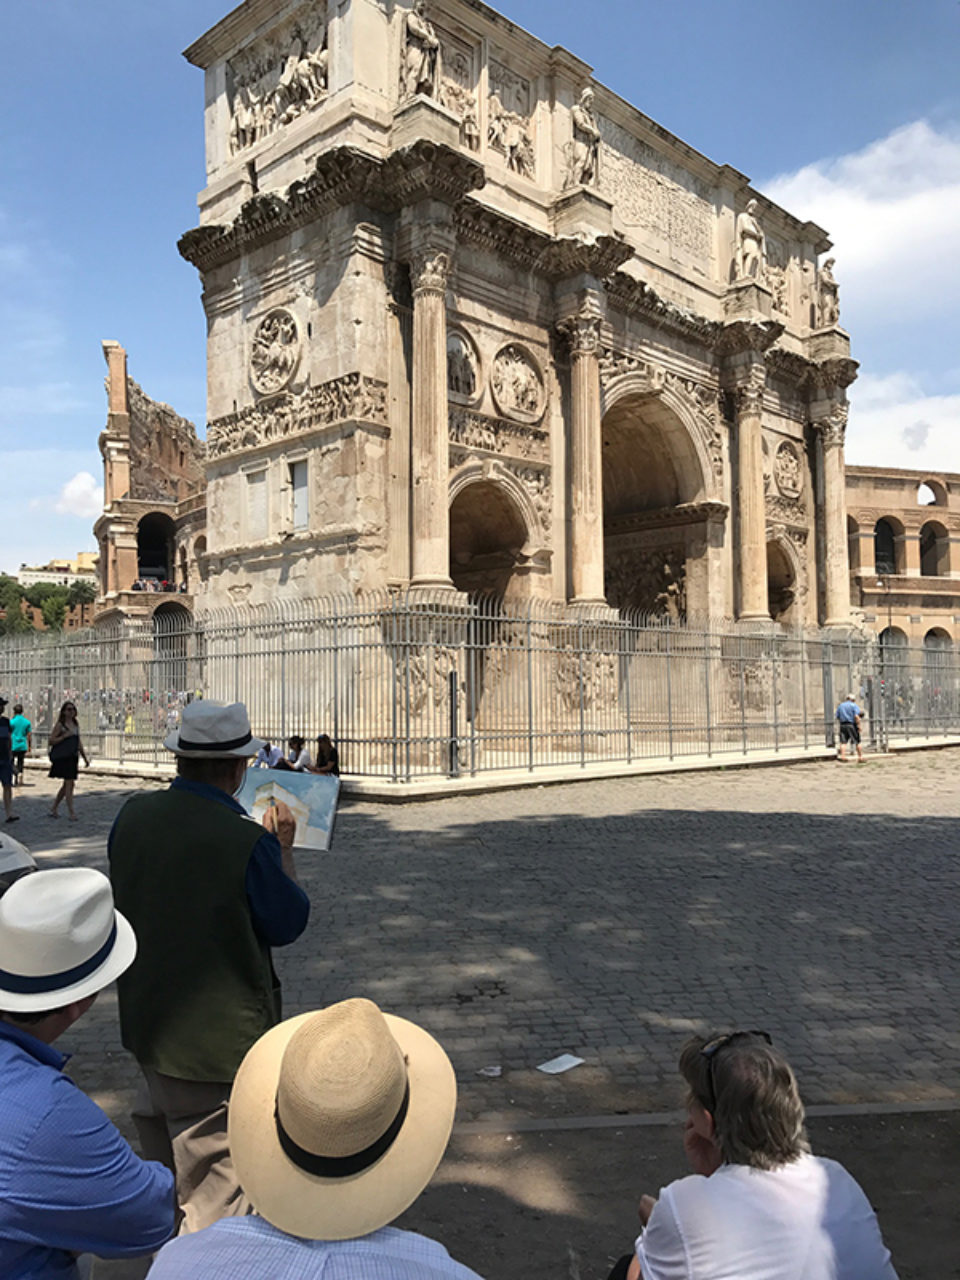 Tour participants sketch on location at the Arch of Constantine